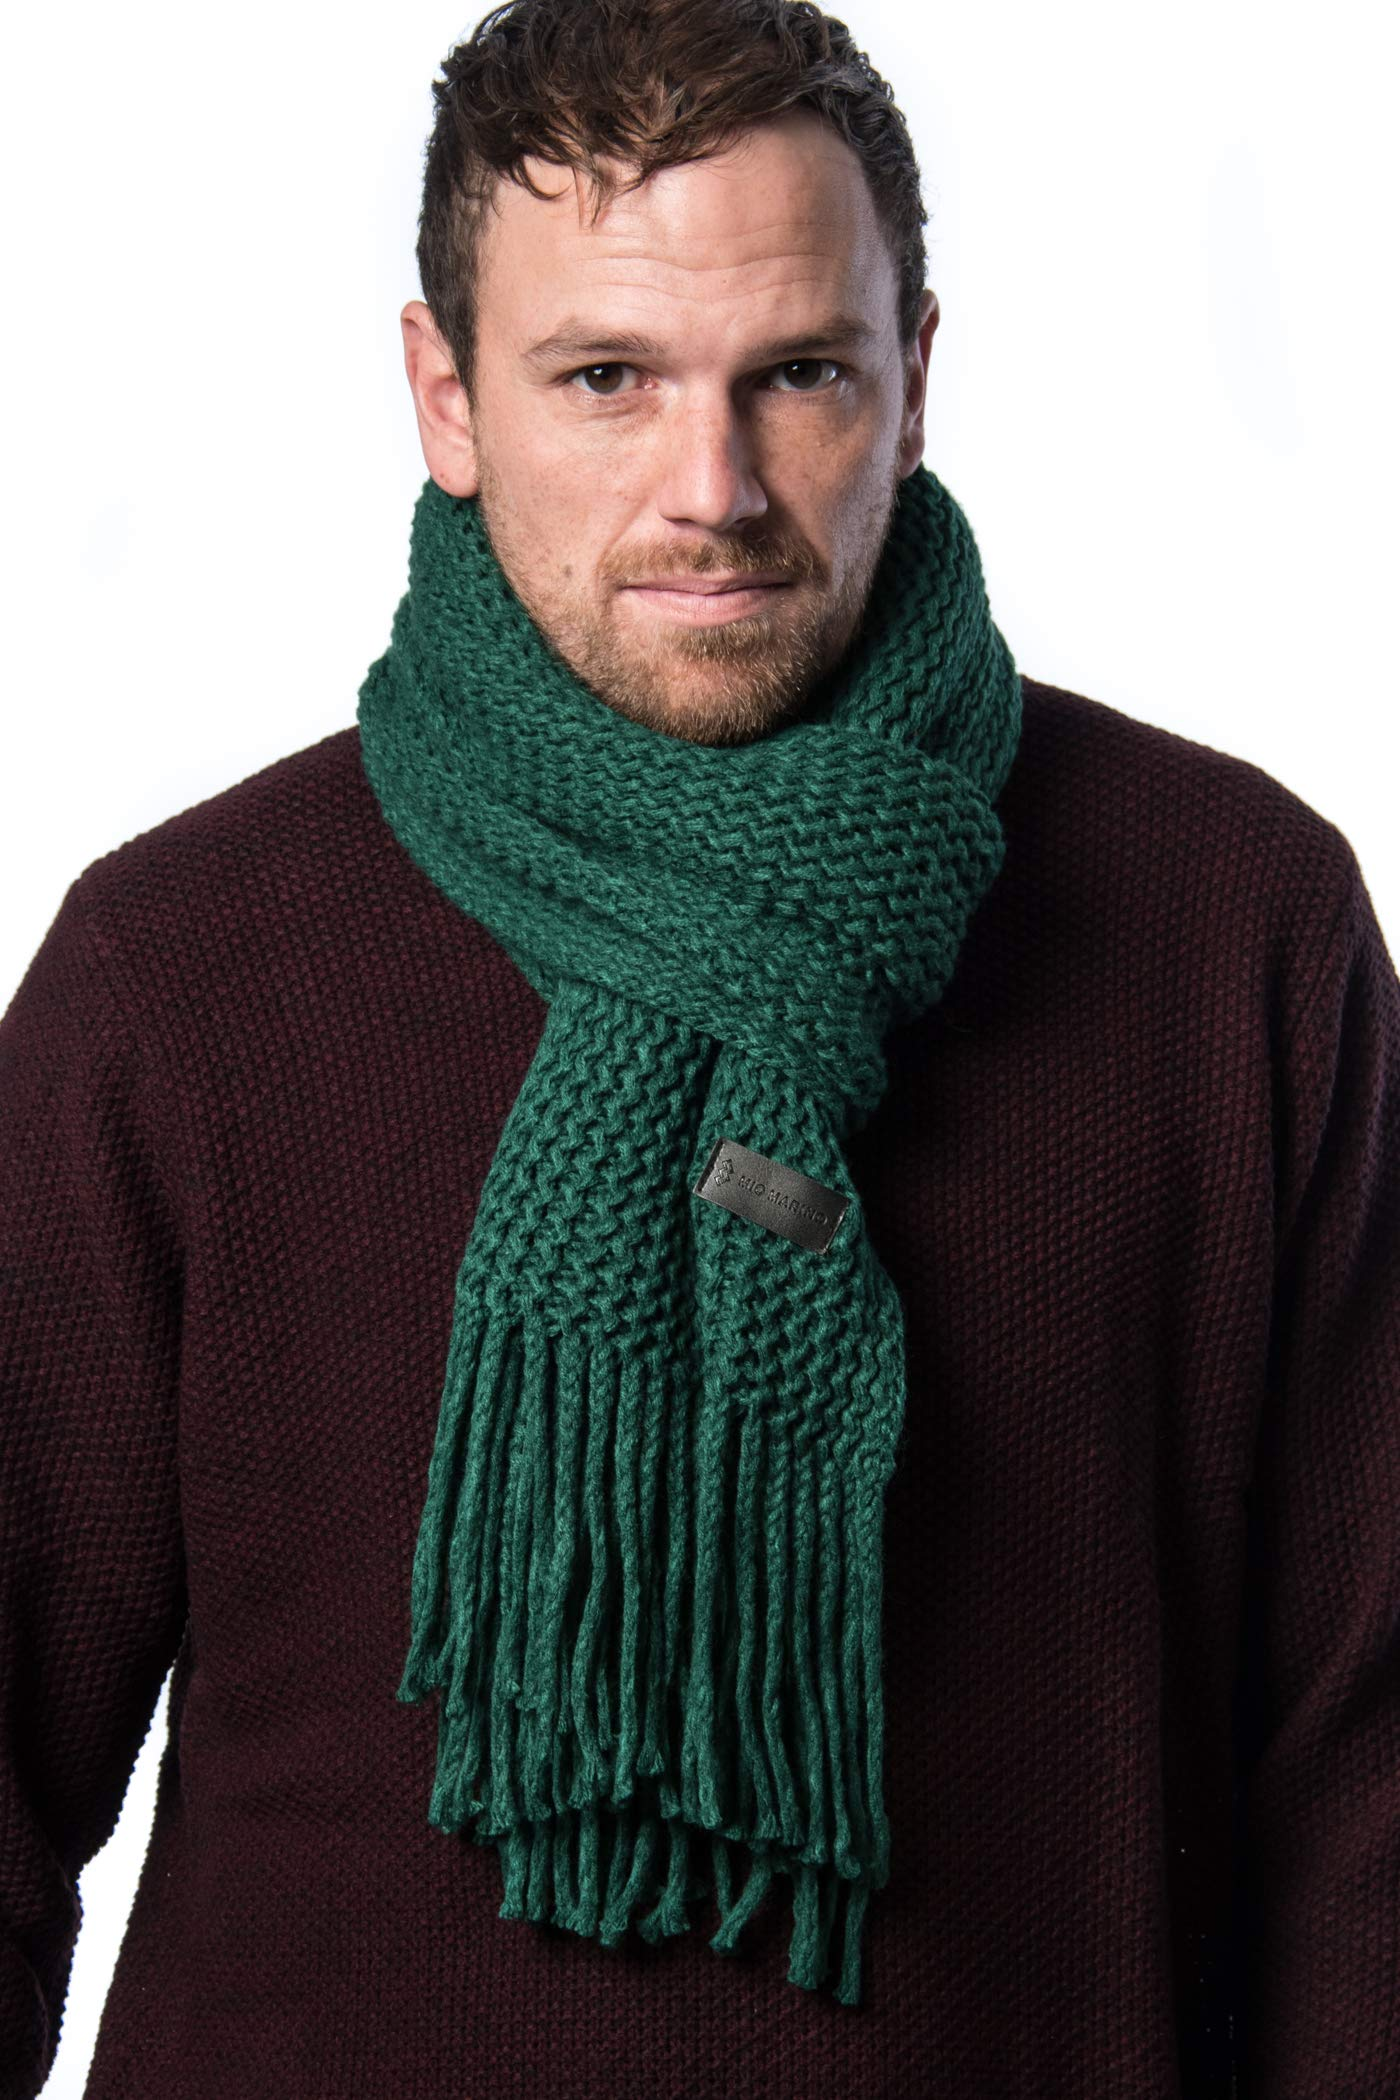 eaa58d971639b Mio Marino Mens Knitted Scarf - Winter Scarfs for Men - Ribbed Knit Mens  Scarves - Black - onesize at Amazon Men's Clothing store: